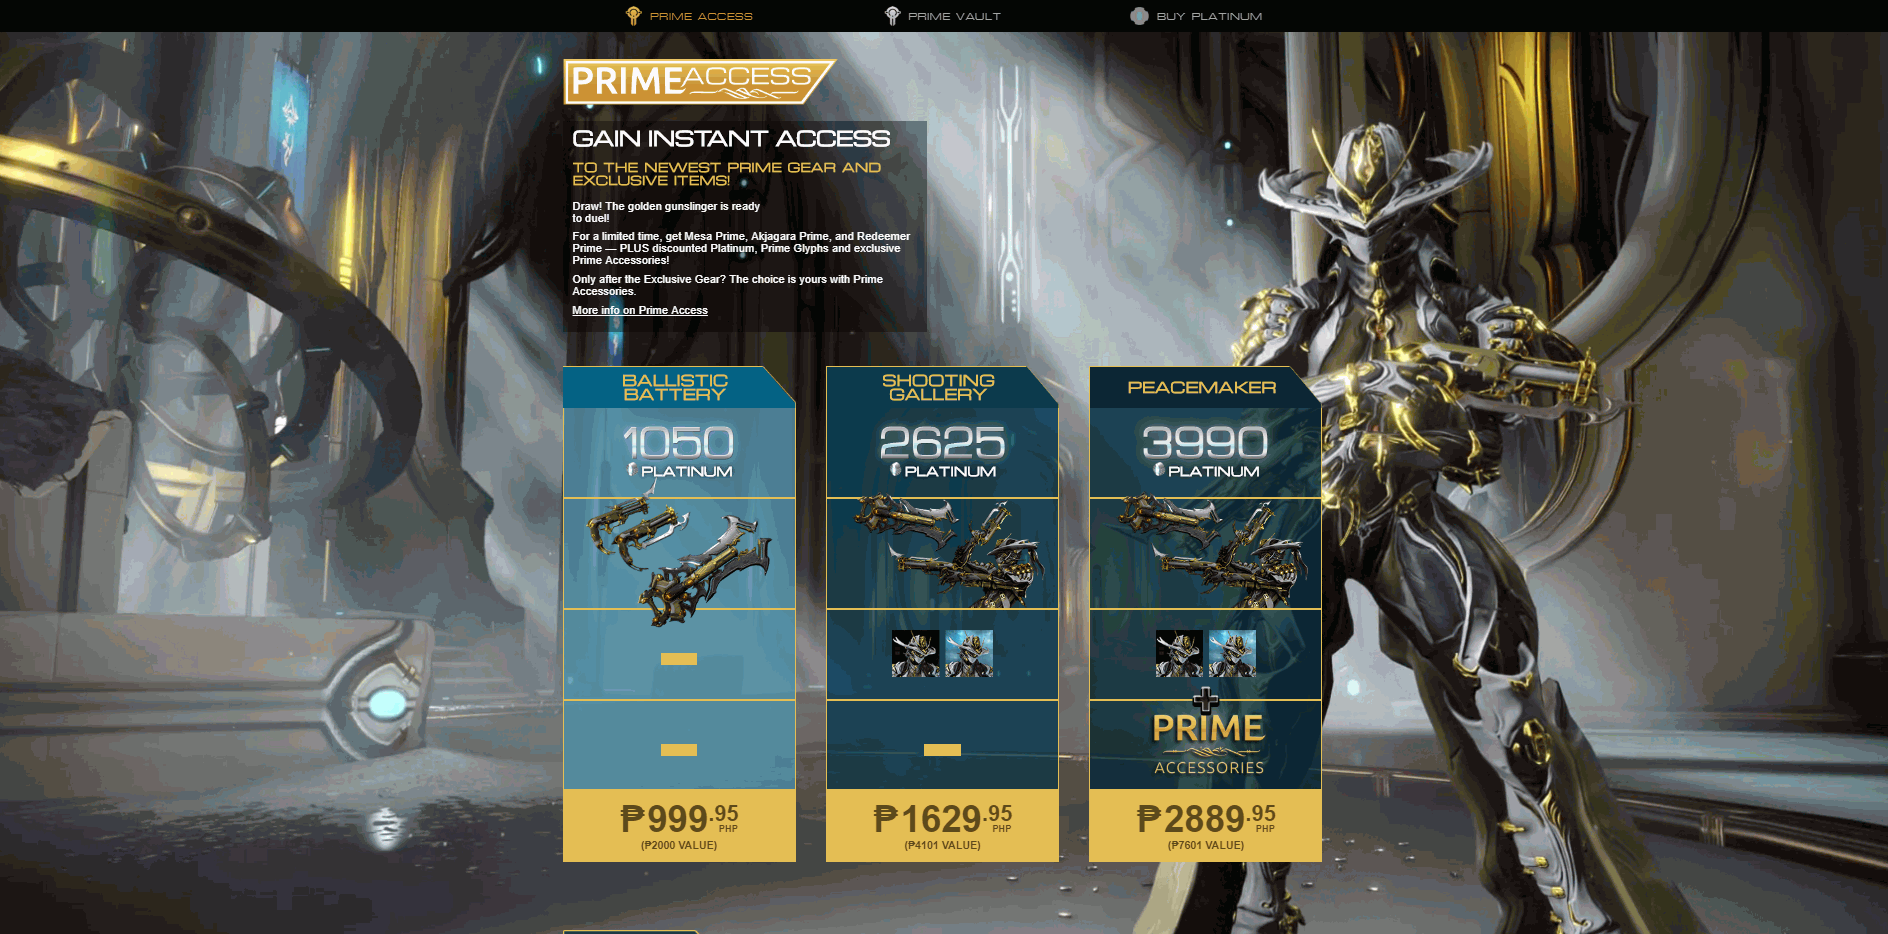 warframe how to get free prime access